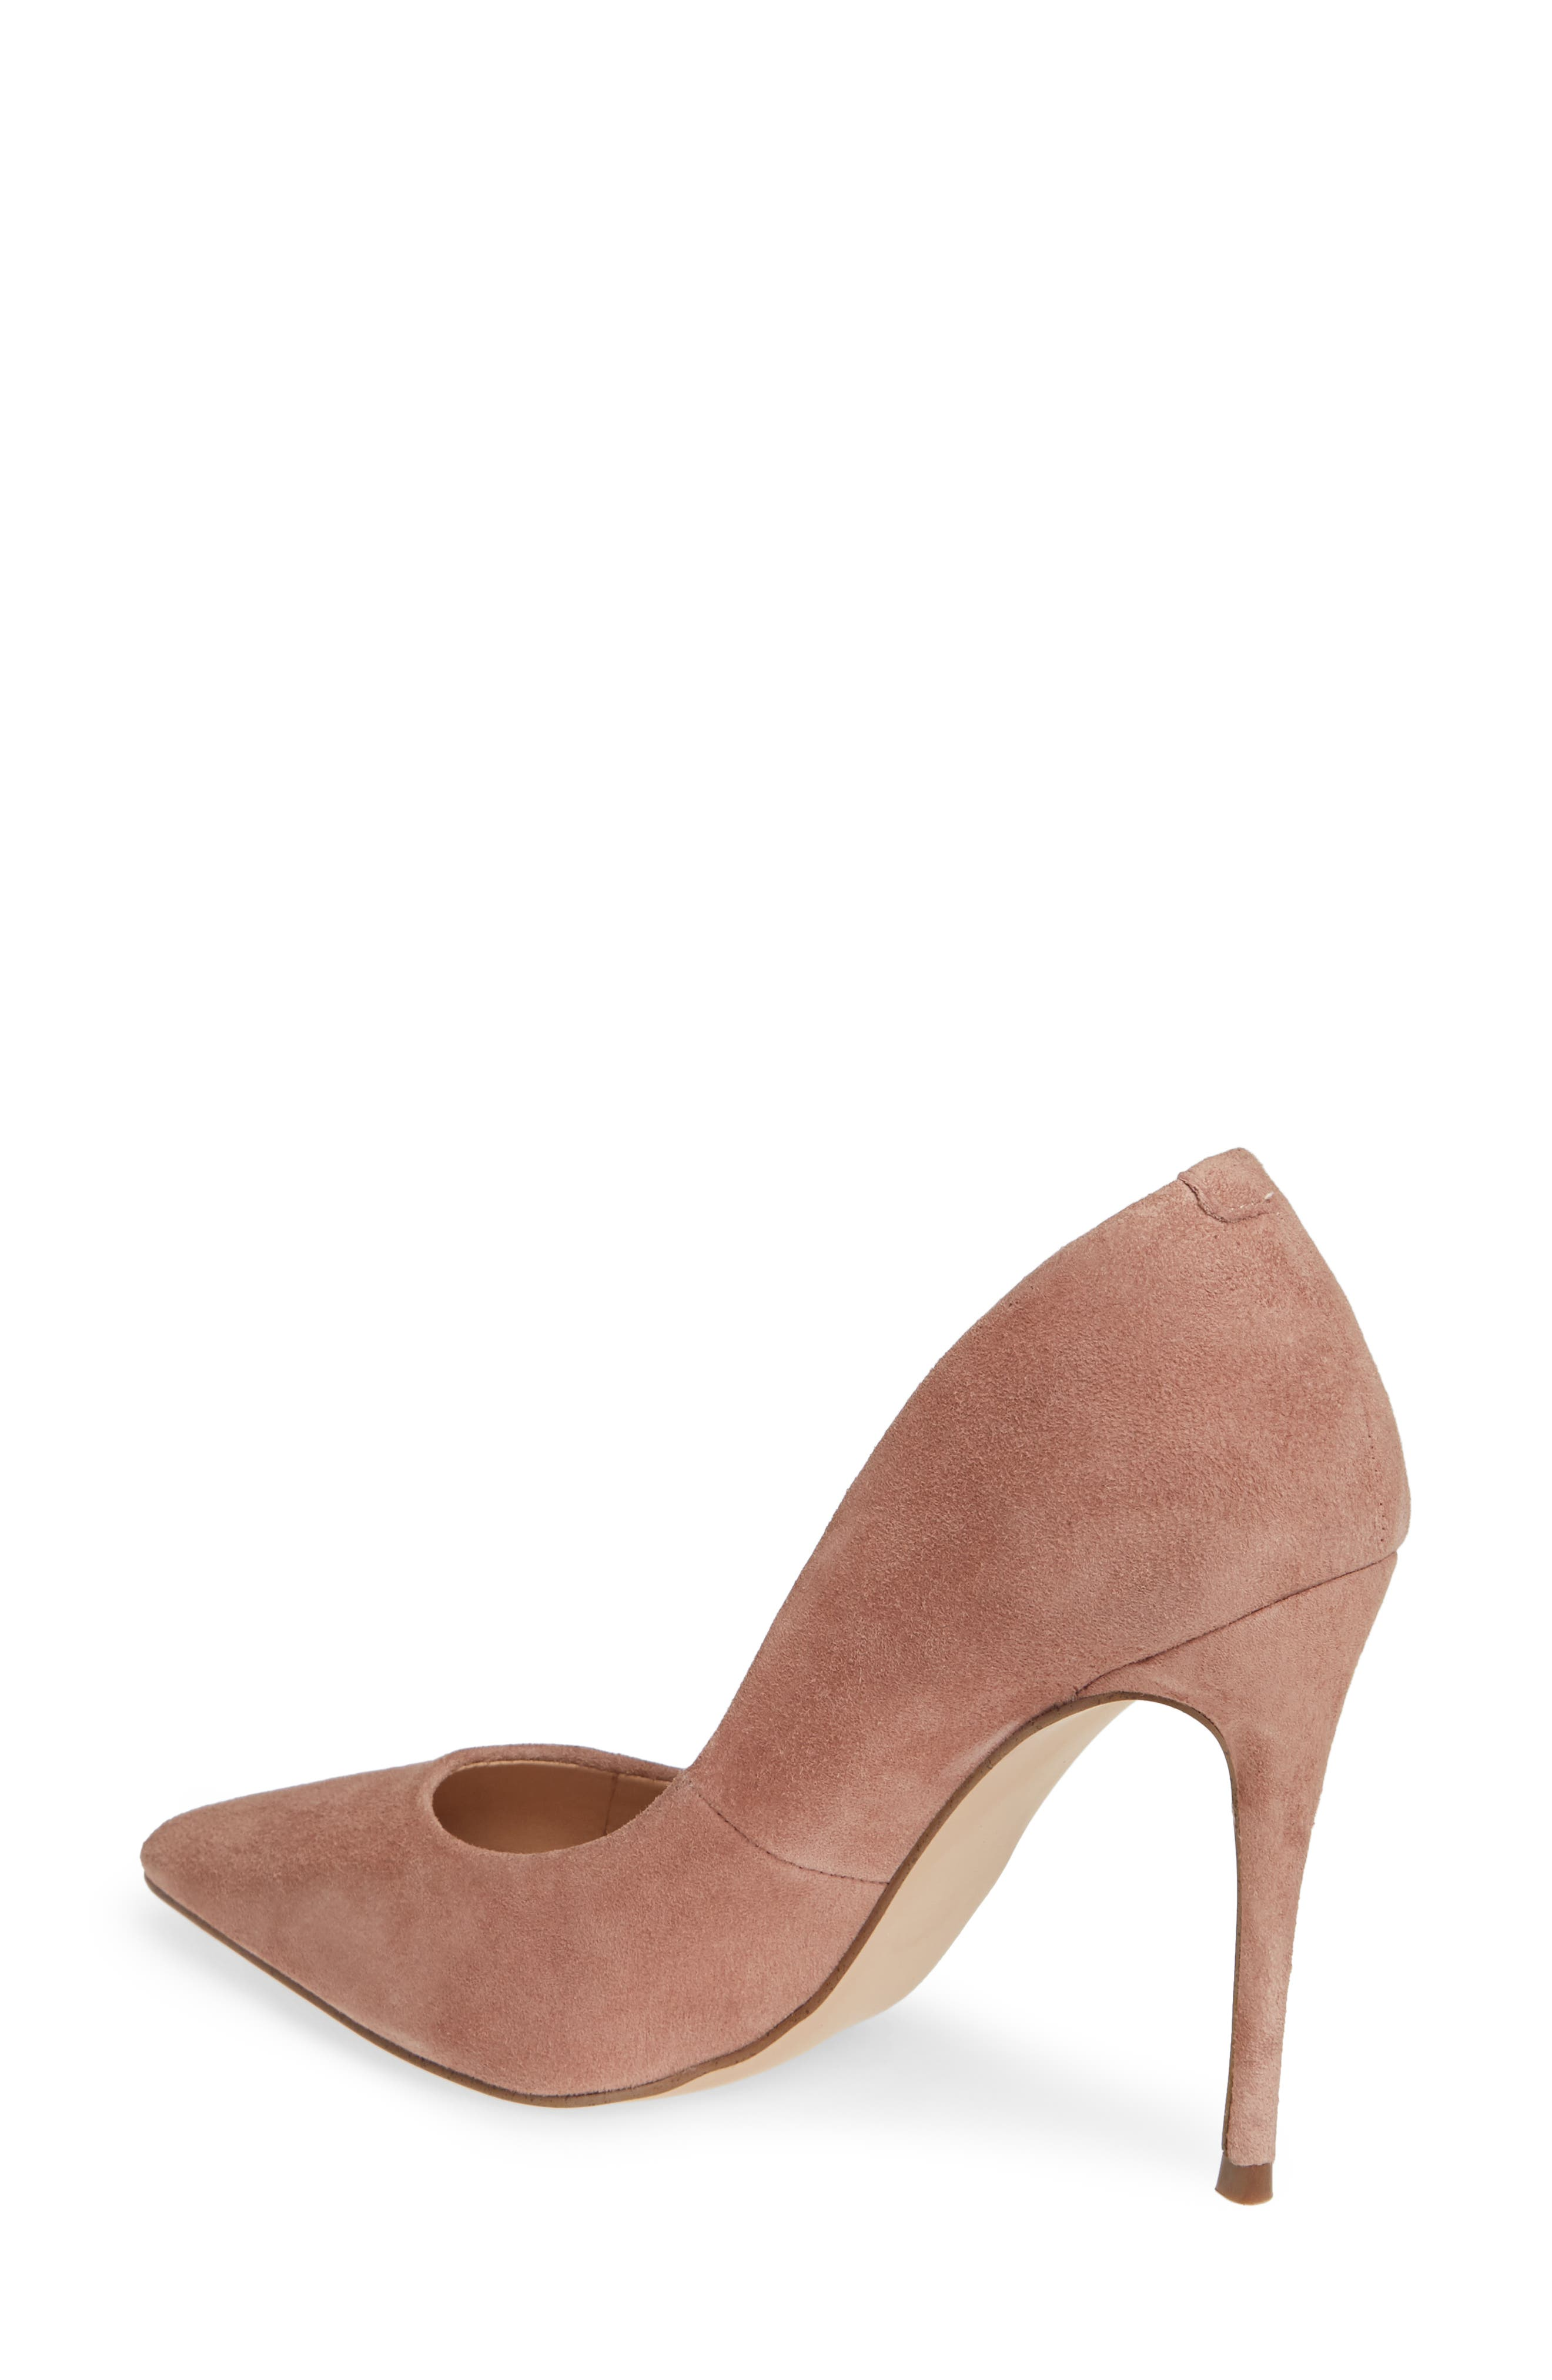 Daisie Pointy-Toe Pump,                             Alternate thumbnail 2, color,                             Tan Suede